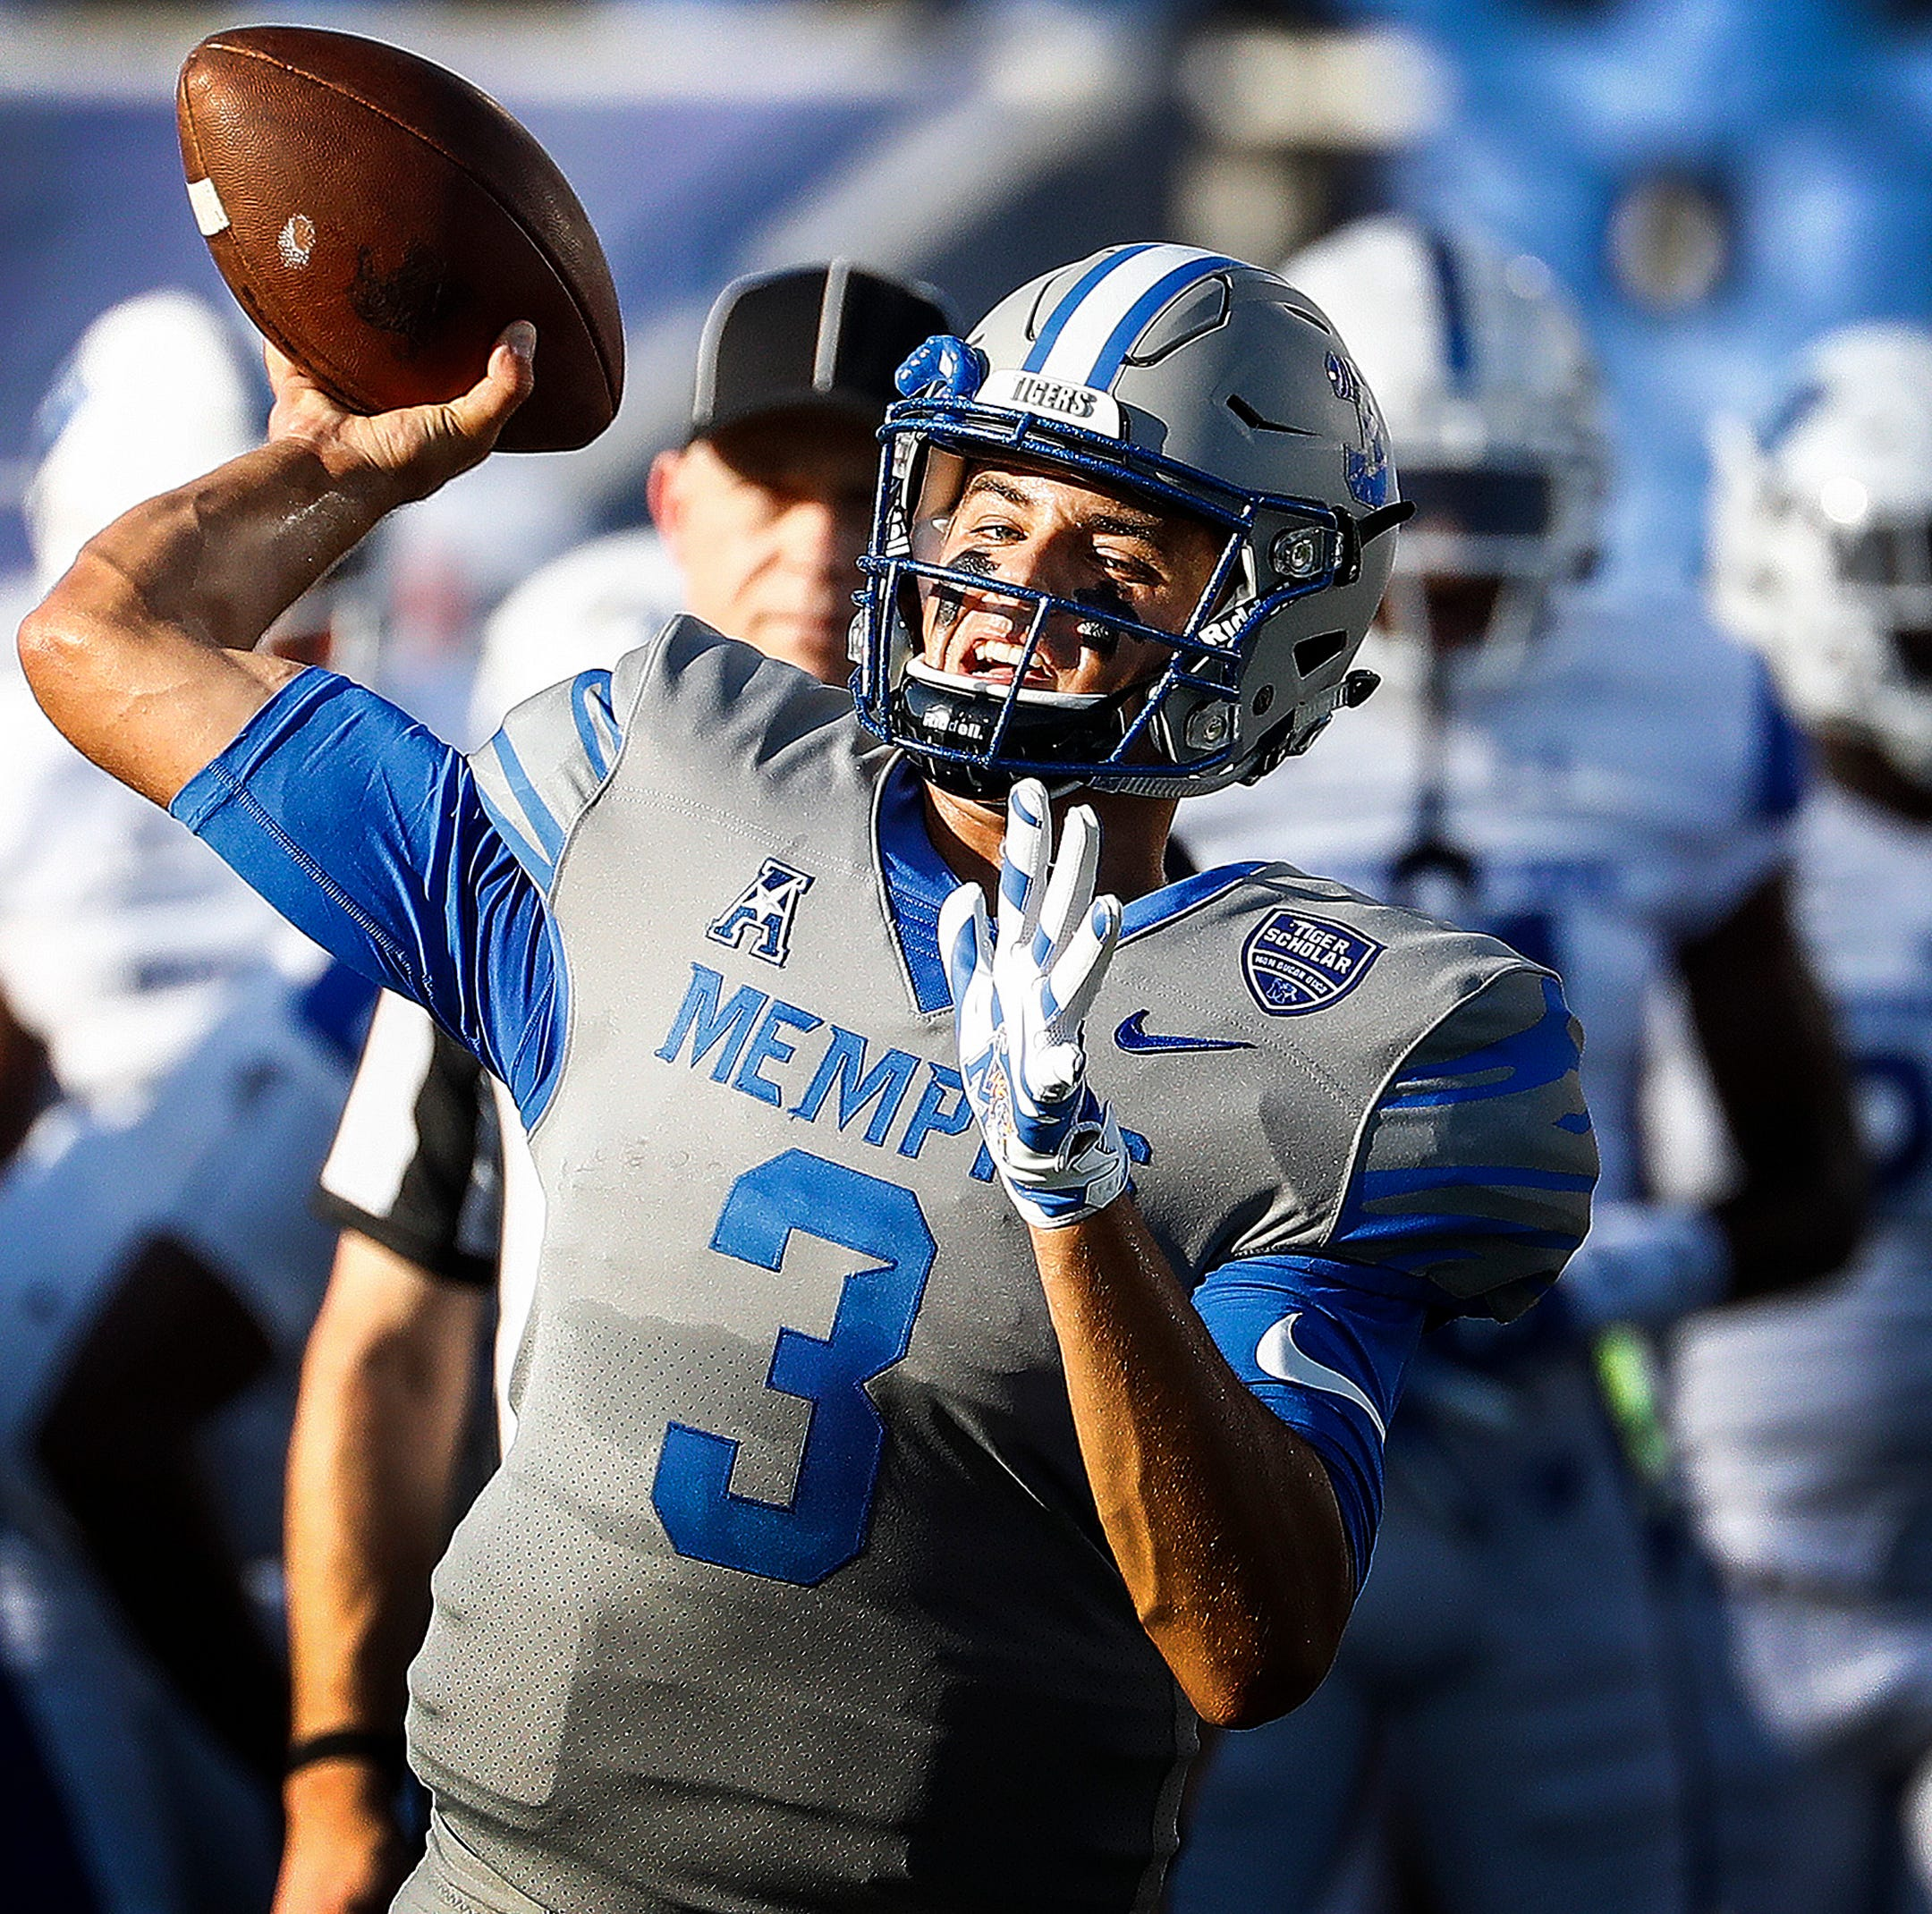 Memphis vs South Alabama football: 5 things to know for Saturday's game